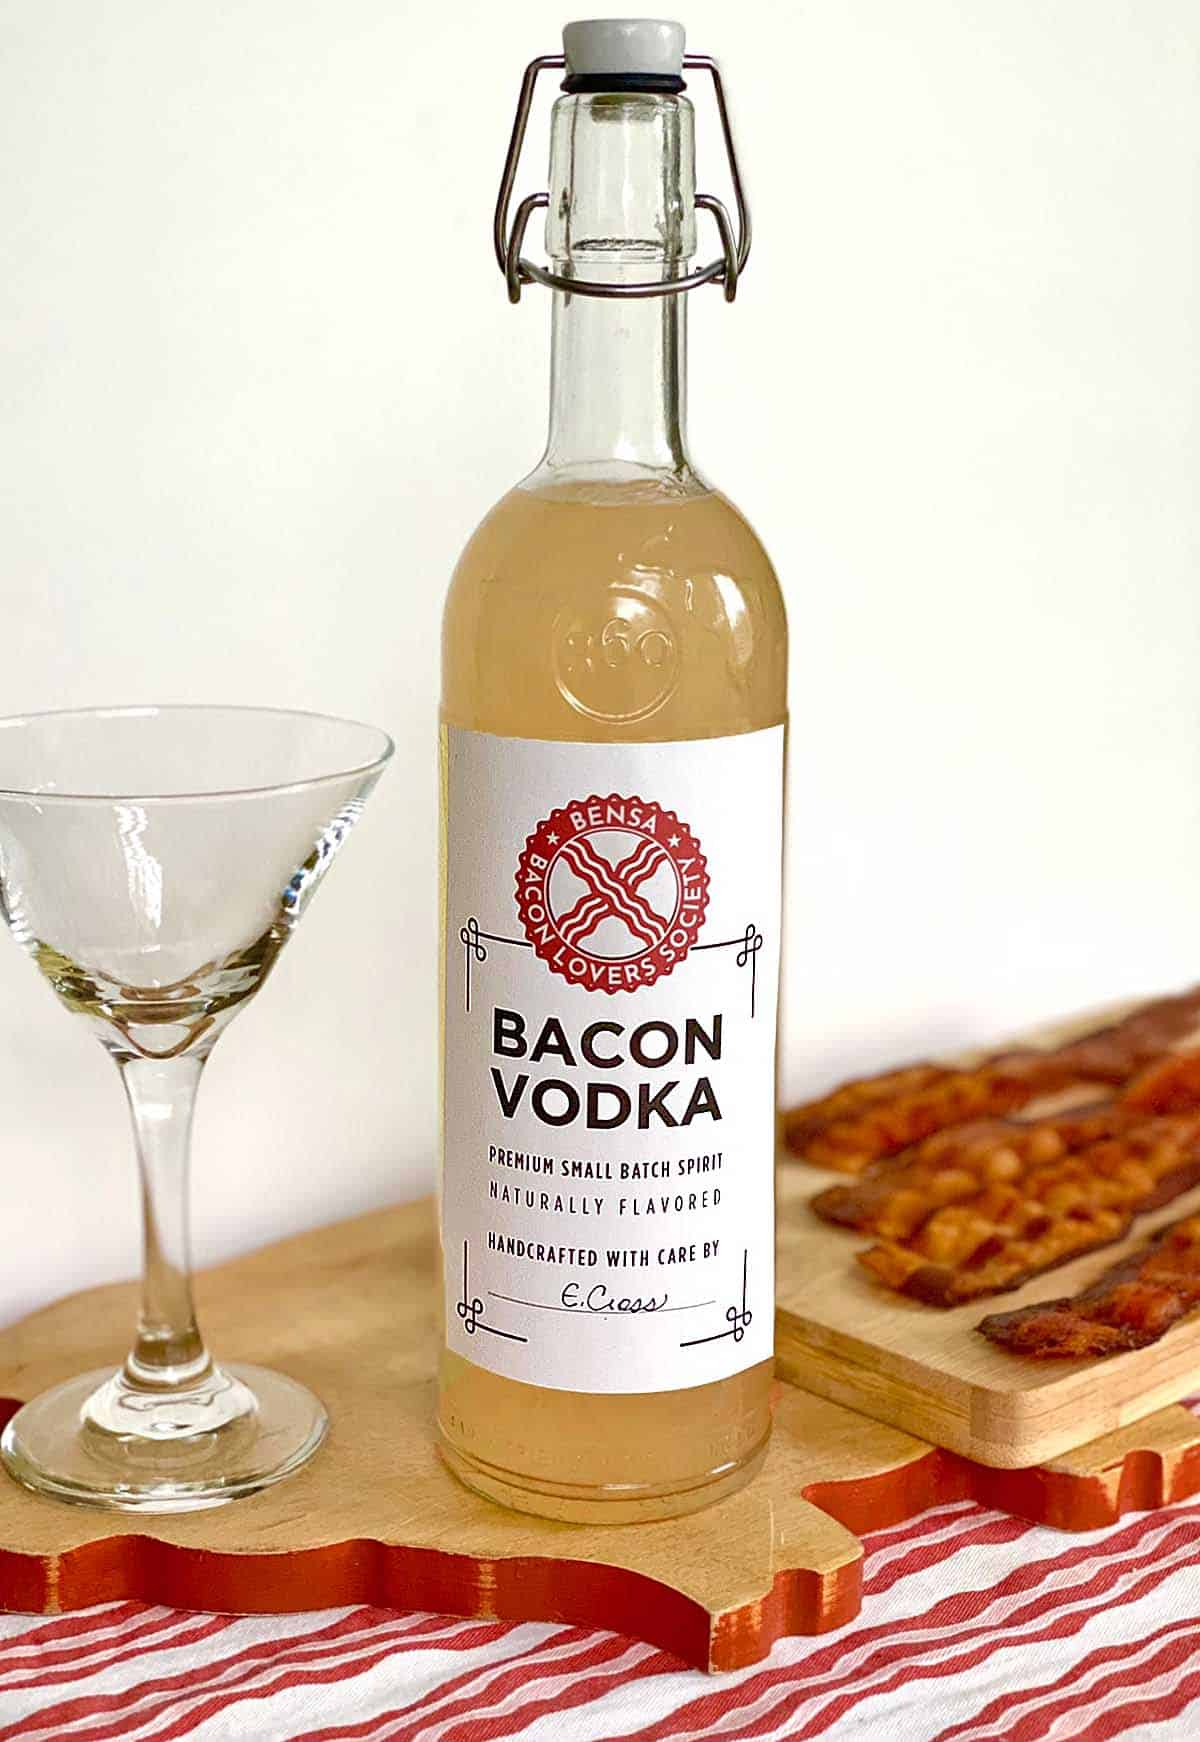 A close up of a bottle of bacon flavored vodka with a cocktail glass on the left and four slices of cooked bacon in the background.